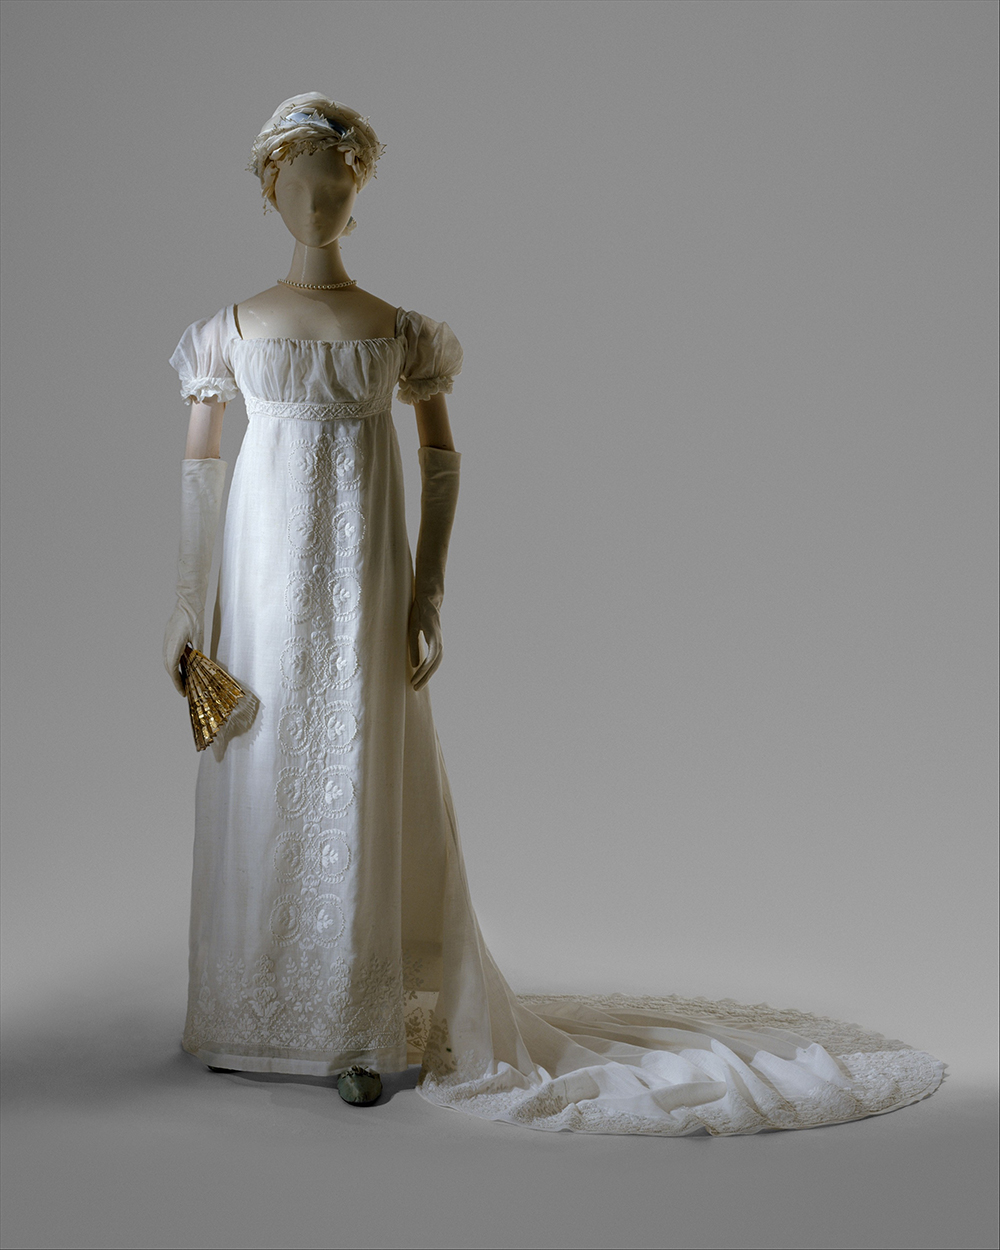 Evening dress, c. 1804. The Metropolitan Museum of Art, Purchase, Gifts in memory of Elizabeth N. Lawrence, 1983.